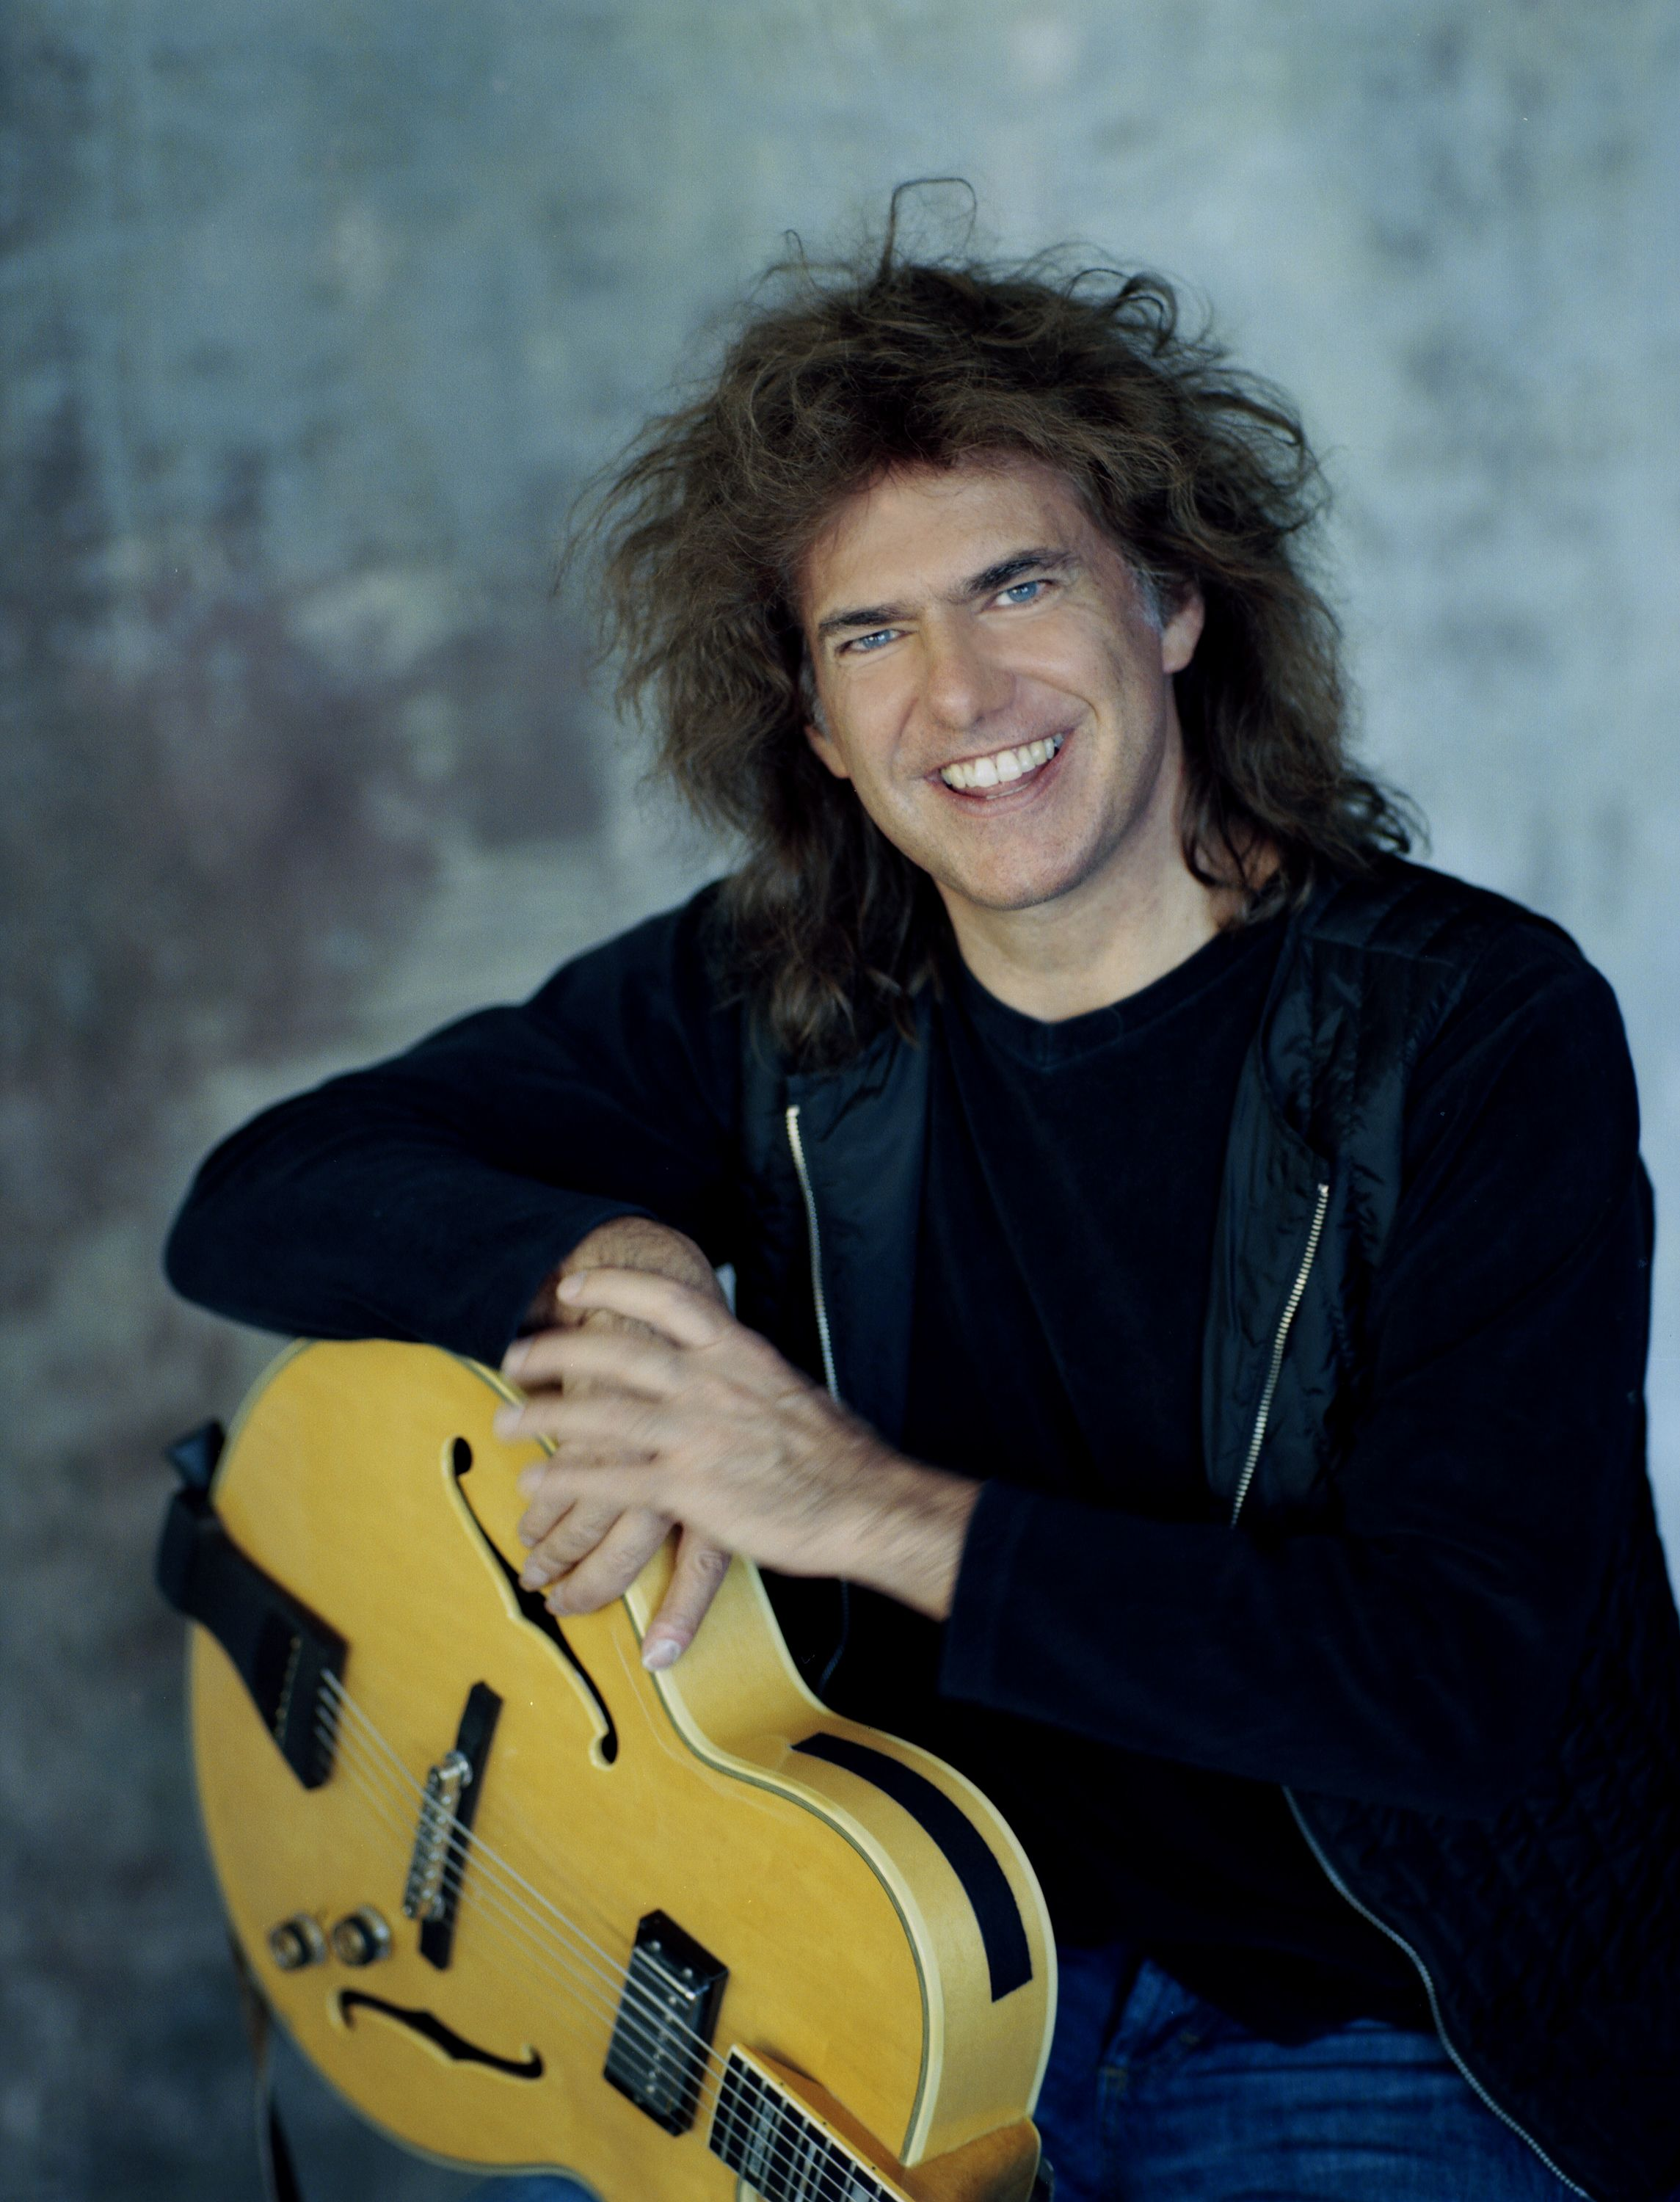 Pat Metheny, talent, virtuoso... been catching his shows ...